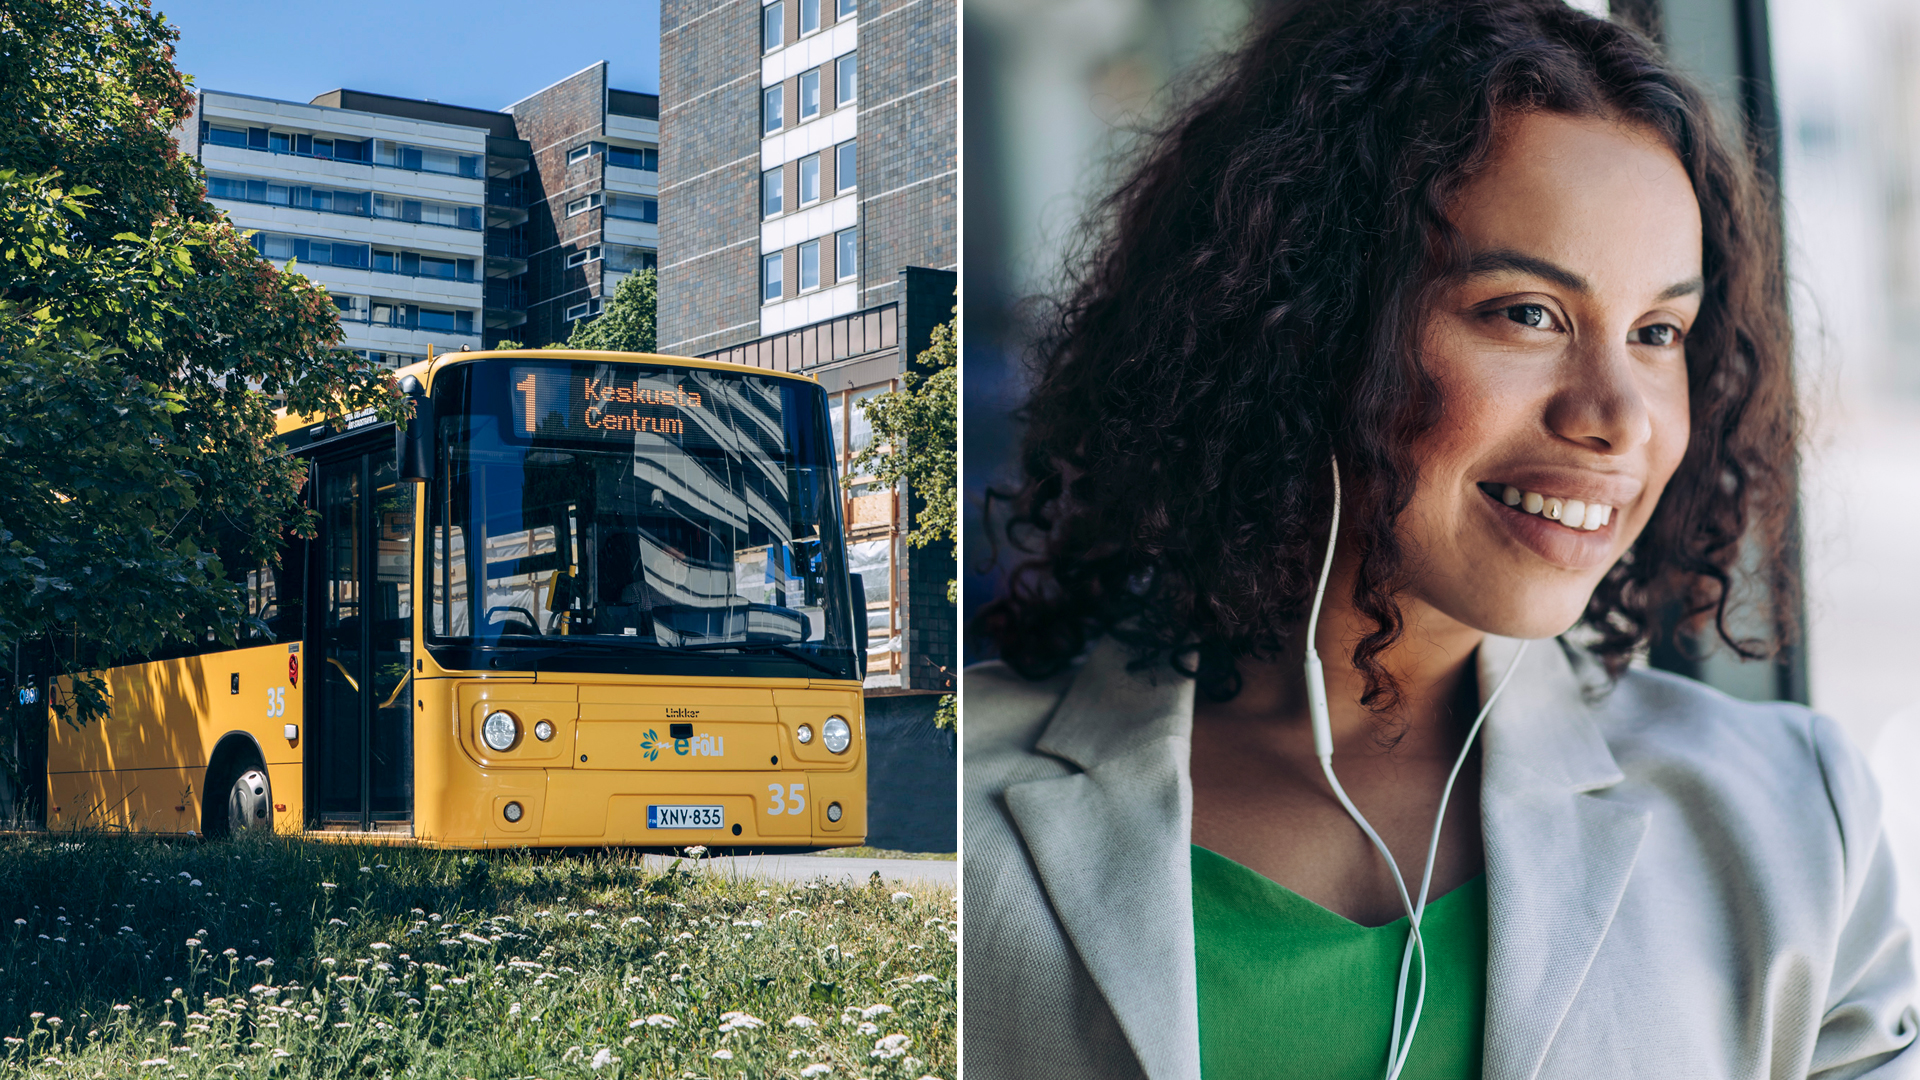 A yellow city bus in Turku and a young woman as passanger.